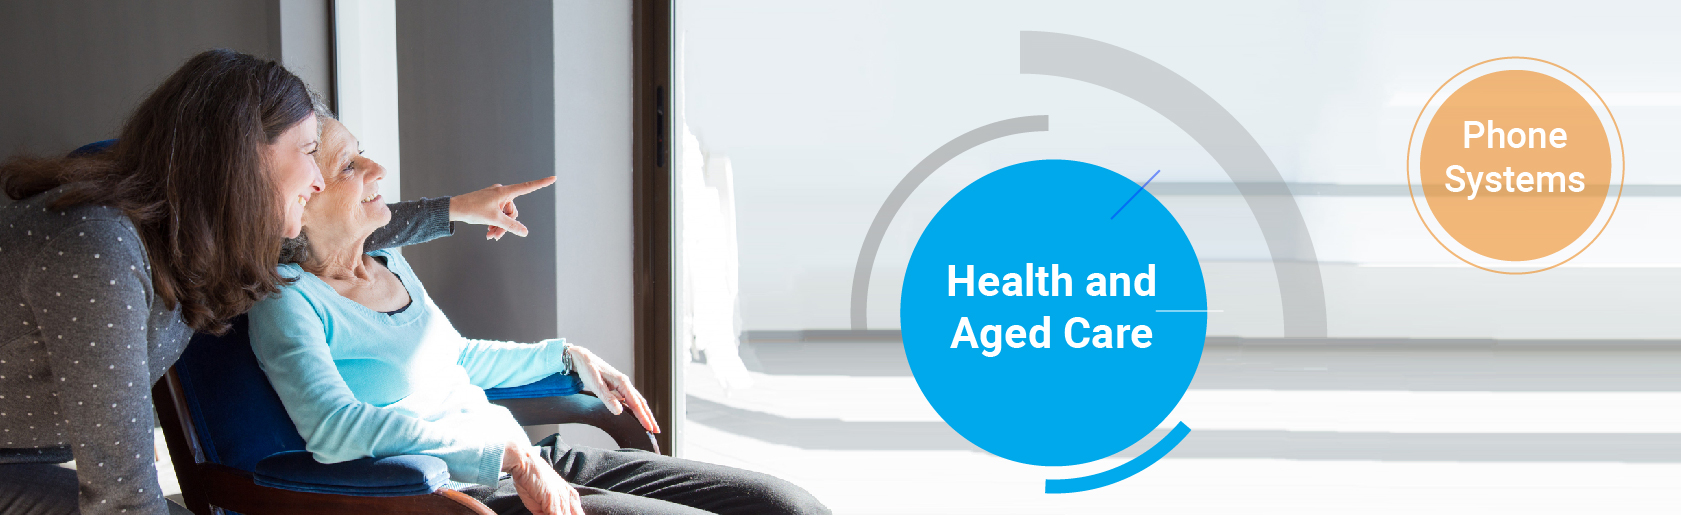 Health and agedcare phone system